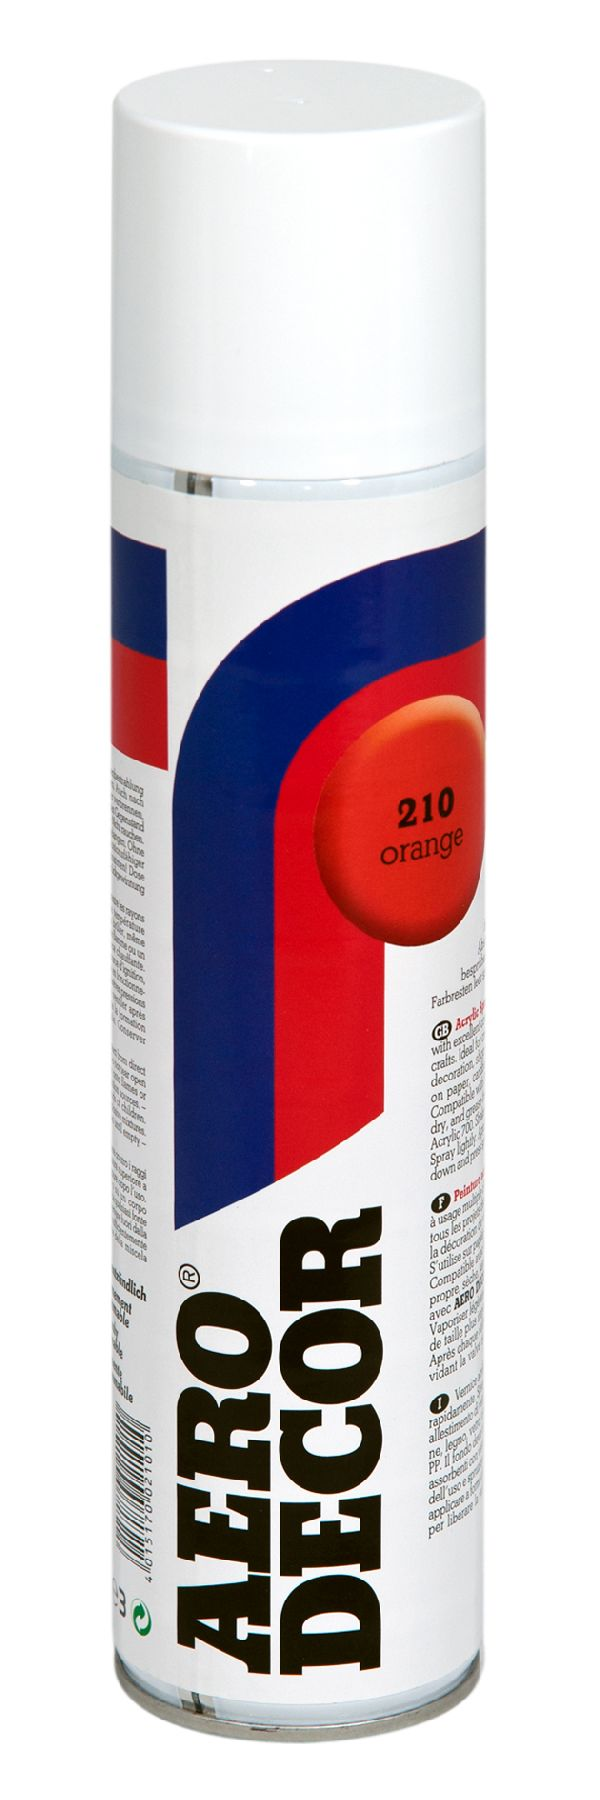 Colorspray, Farbspray ORANGE 210 400 ml